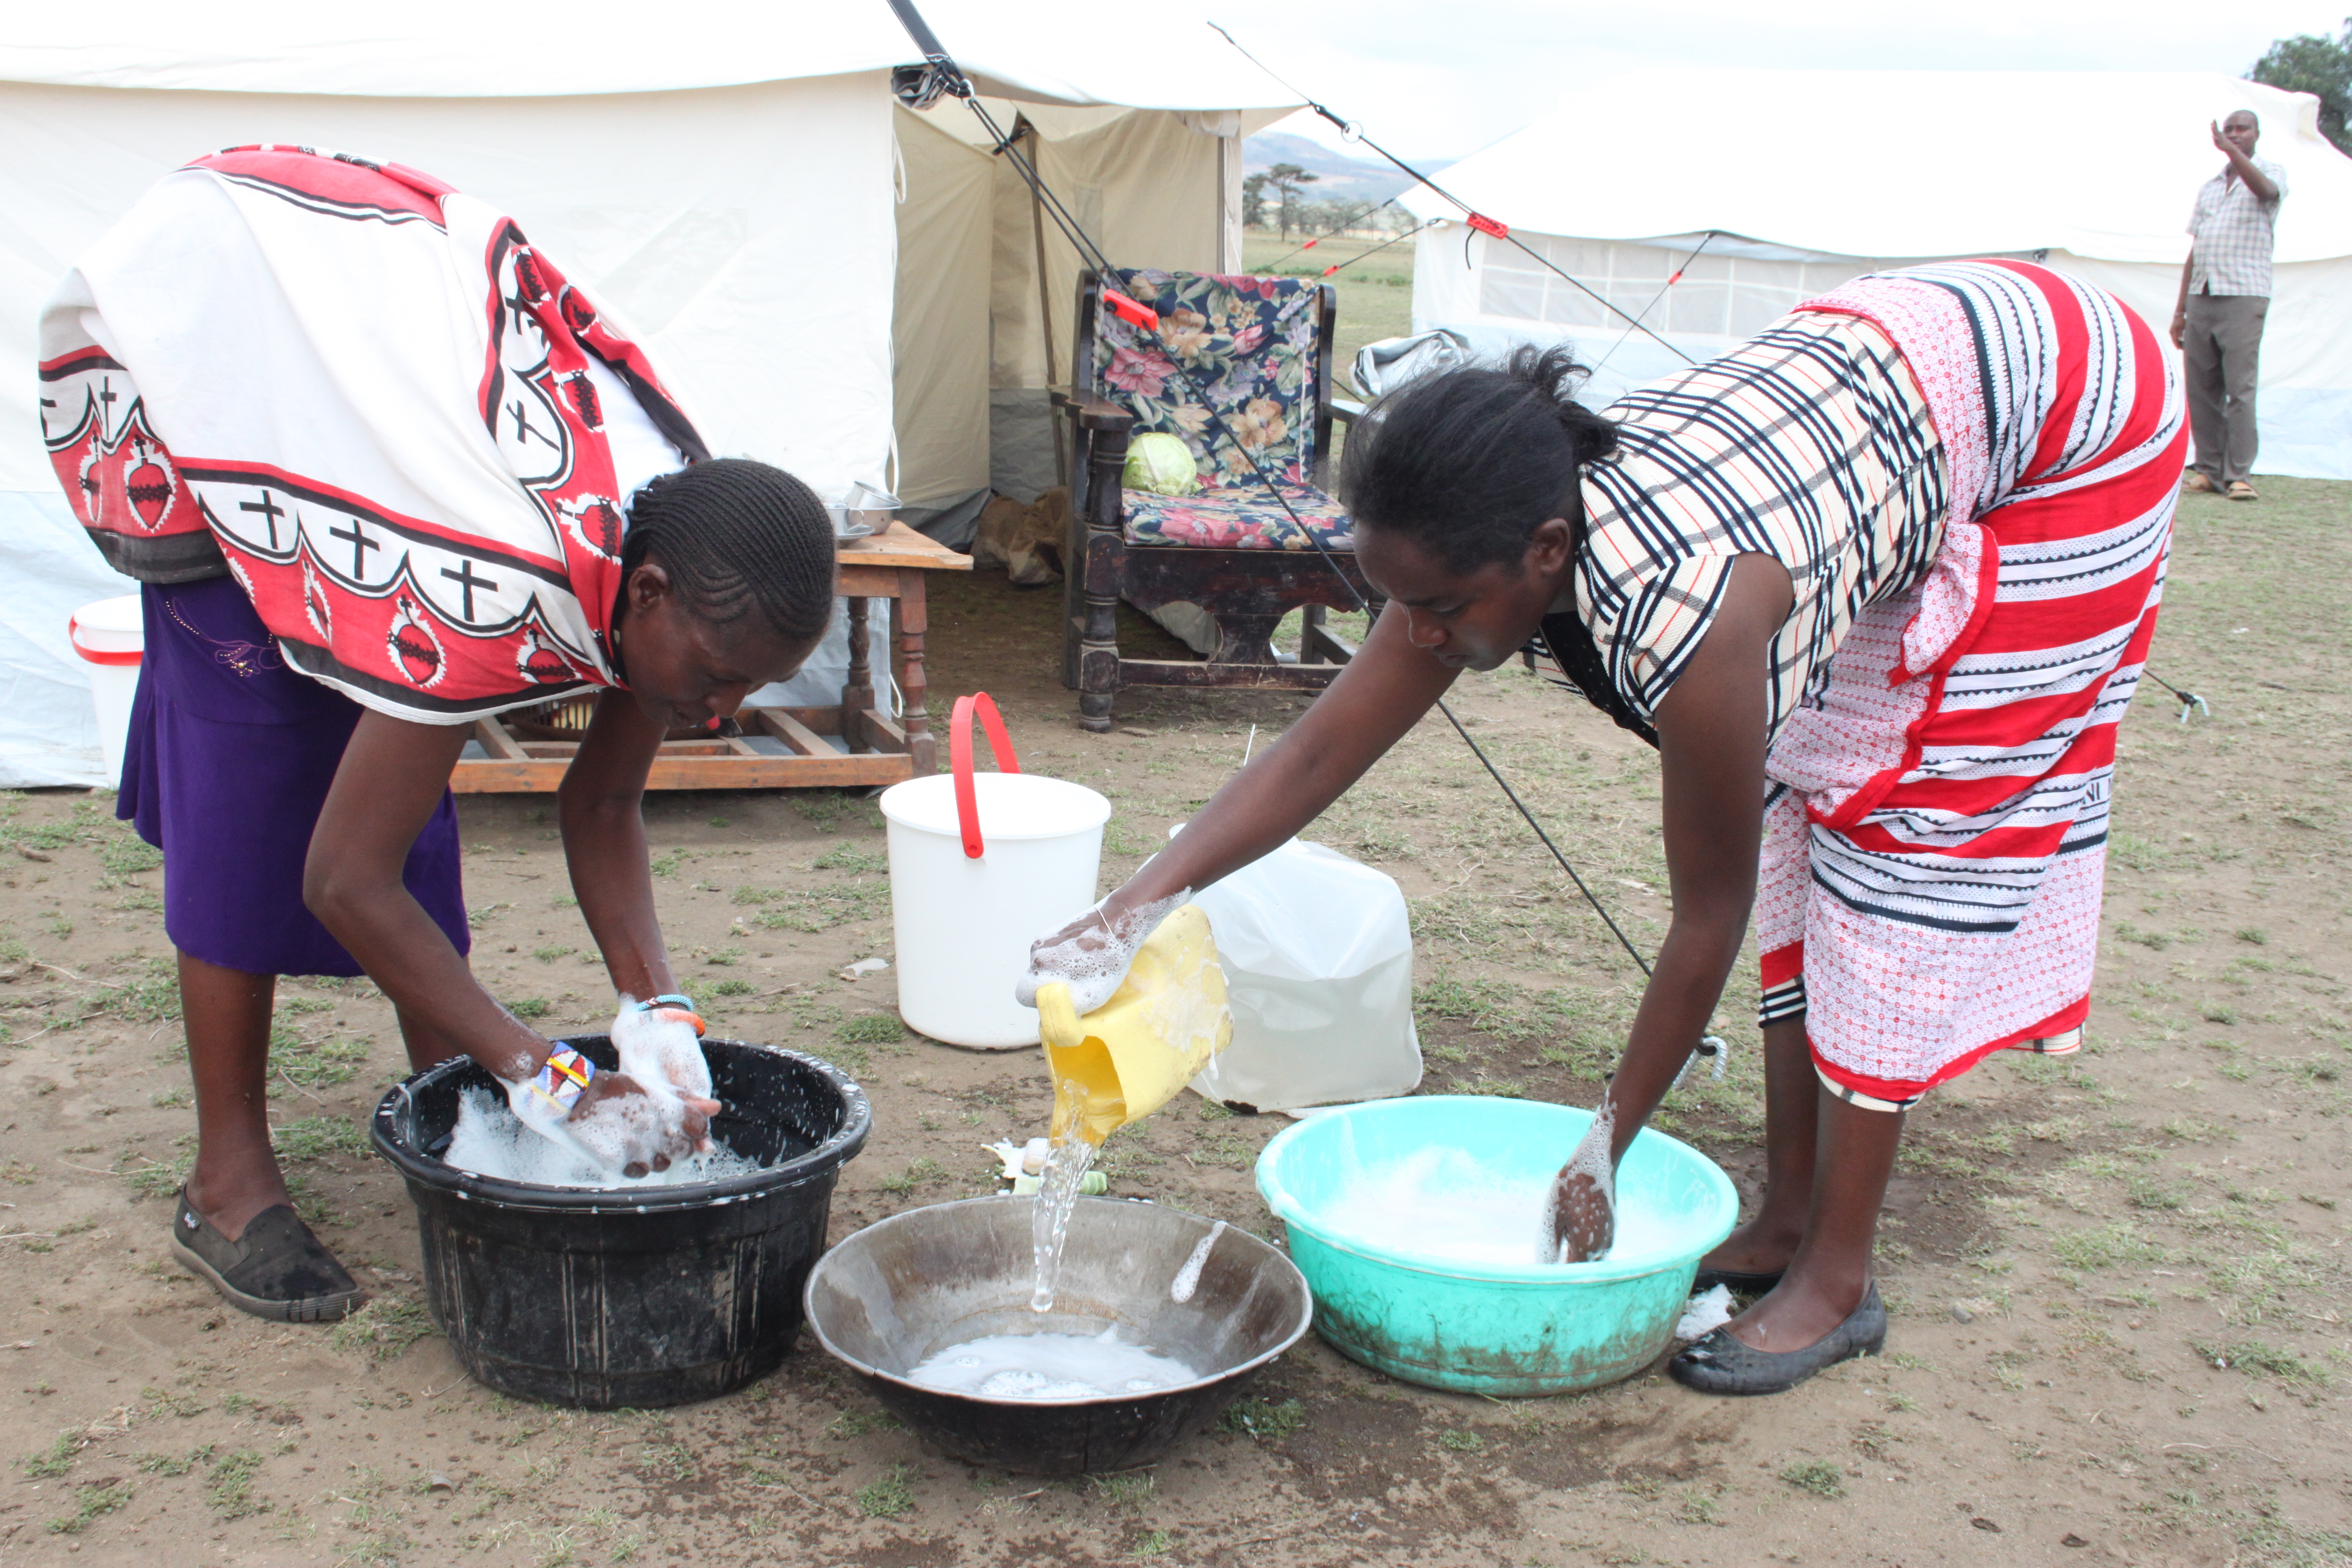 NRS Relief core relief items in Kenya_water bucket, kitchen set, family tent